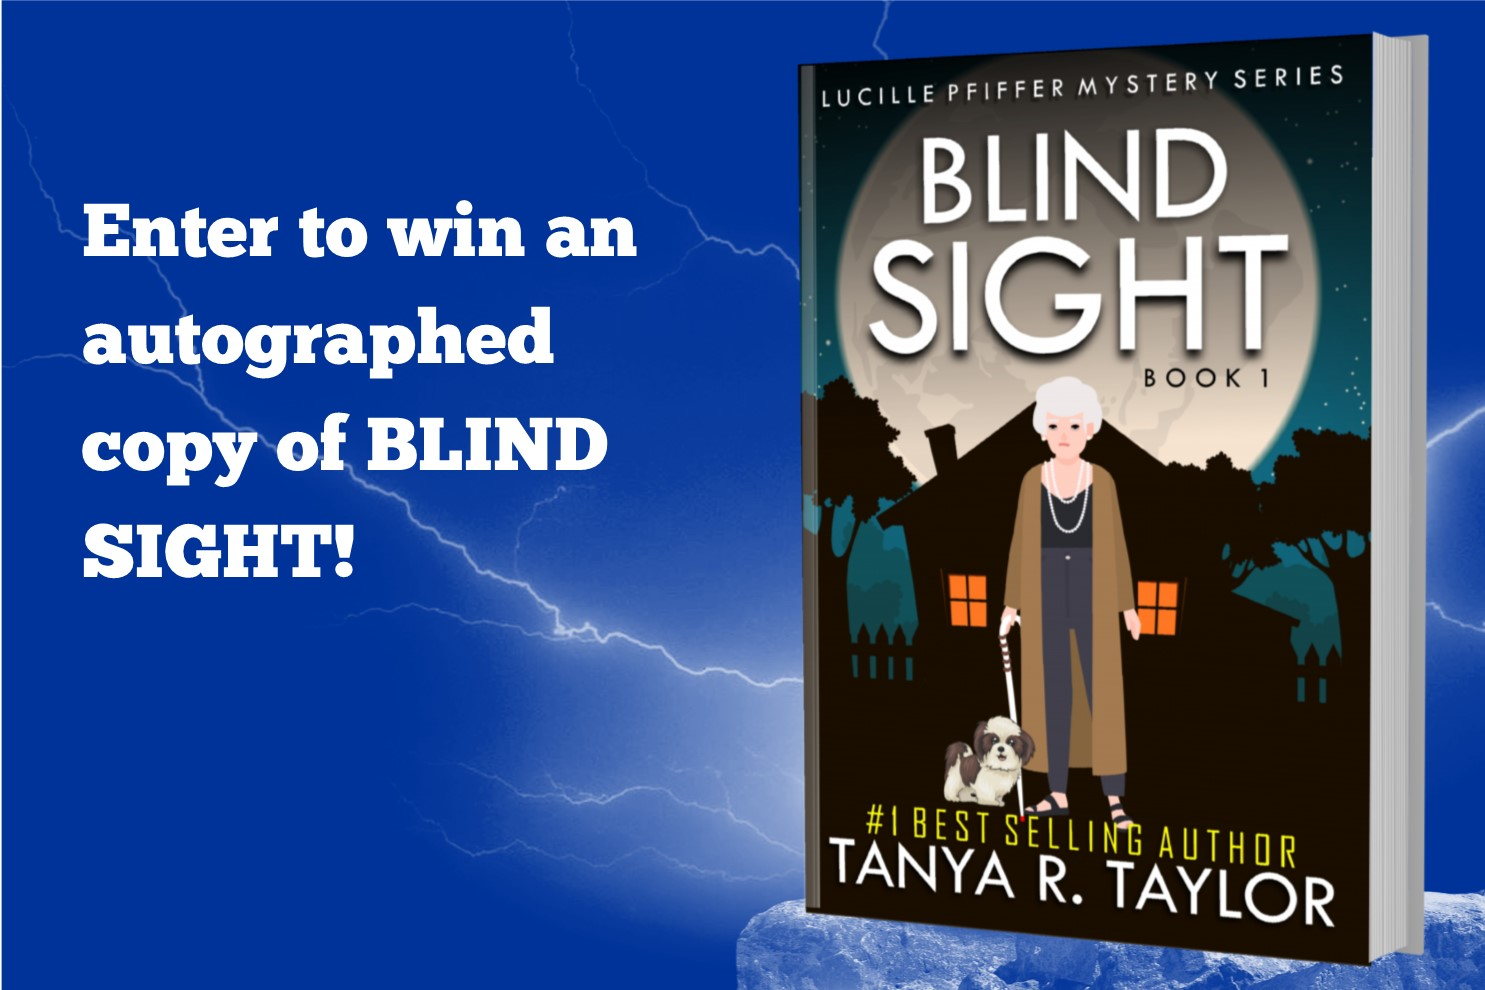 BLIND SIGHT PROMO - AUTHOGRAPHED PAPERBACK COPY